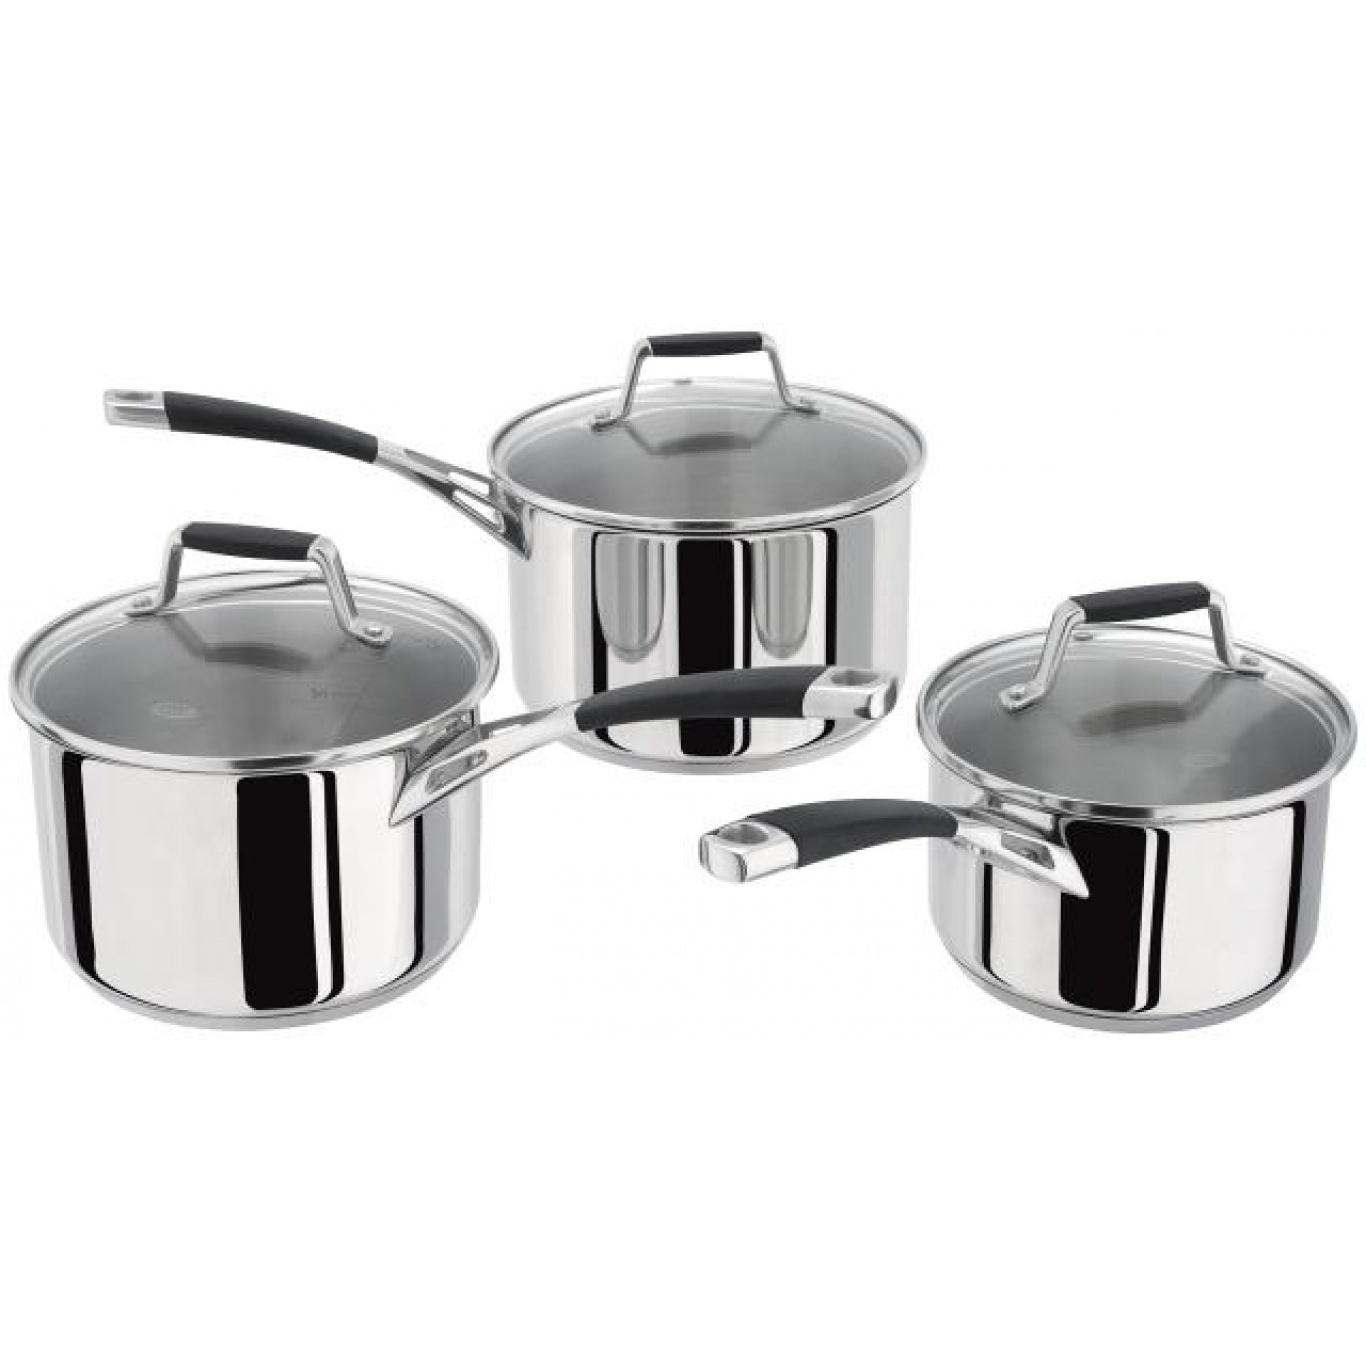 Image of Stellar 5000 Induction 3 Piece Saucepan Set